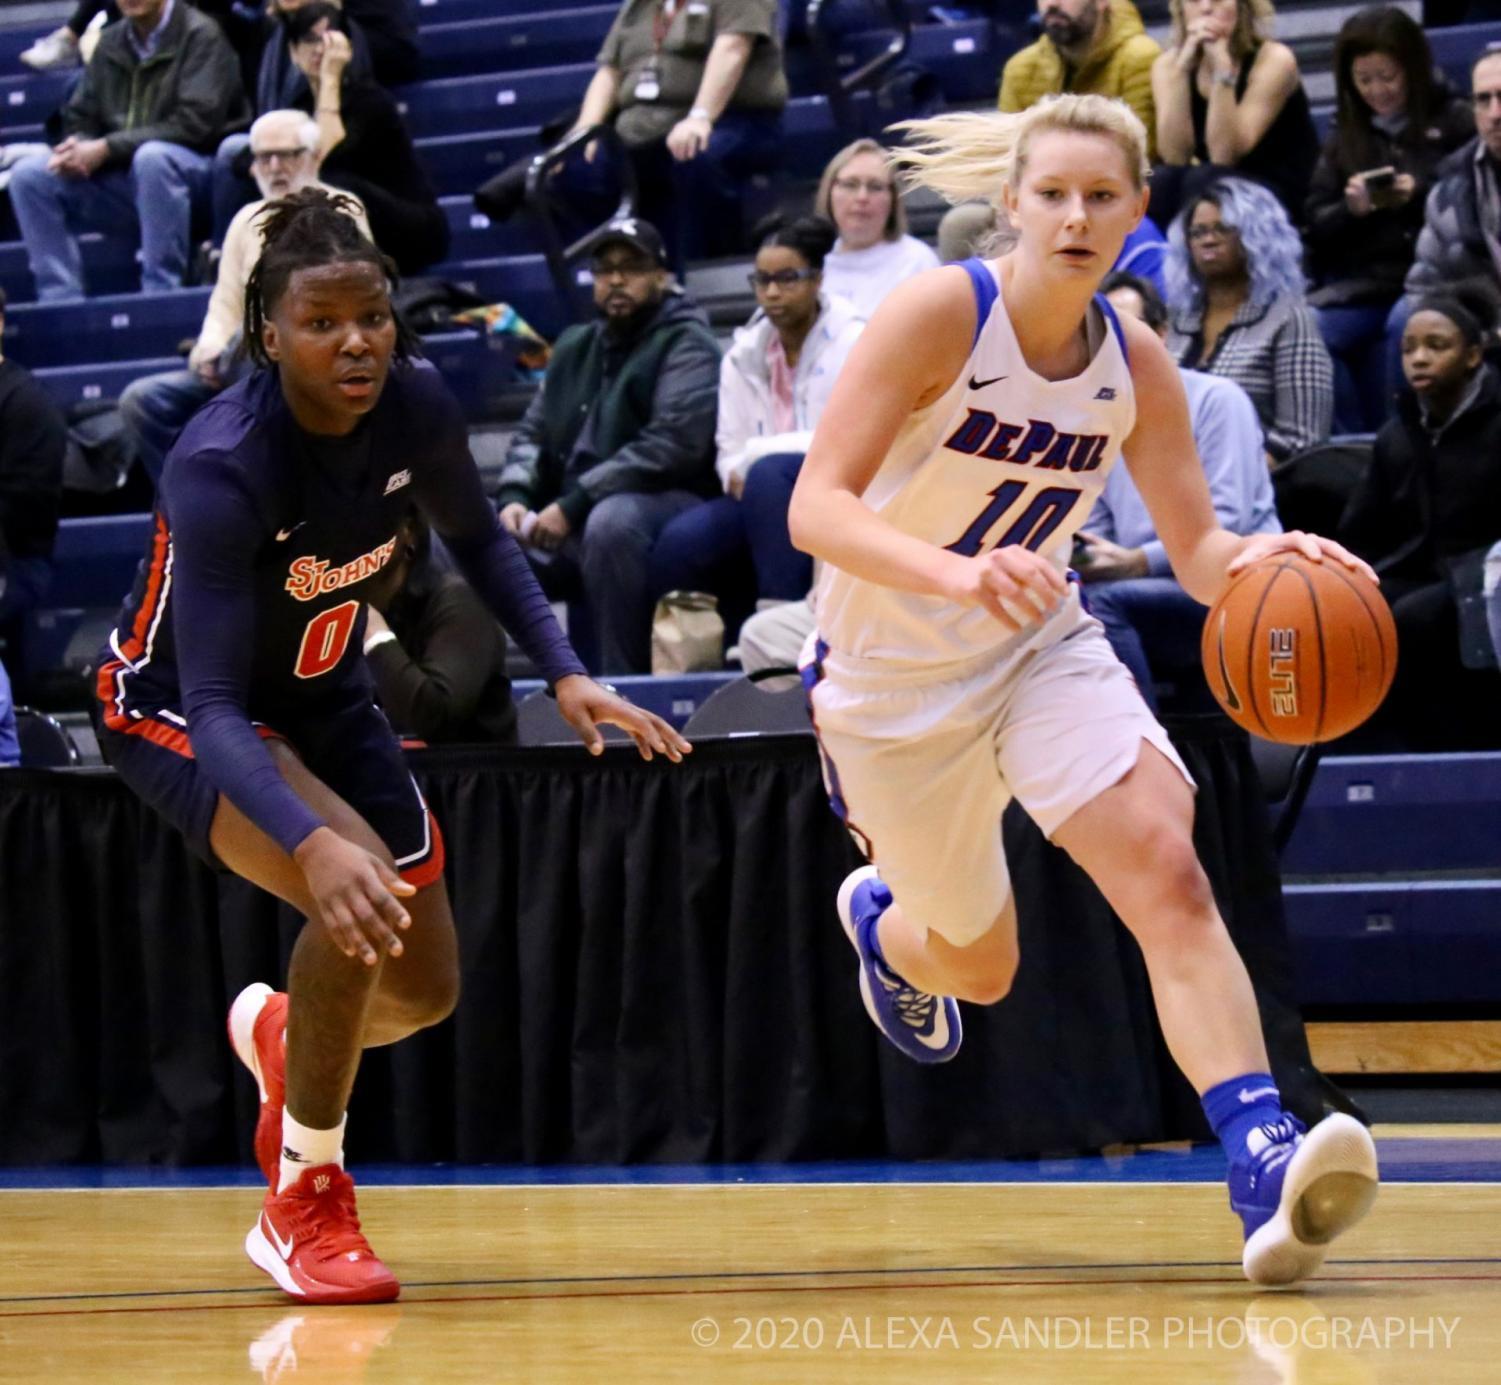 Lexi Held drives into the lane during the first half against St. John's.